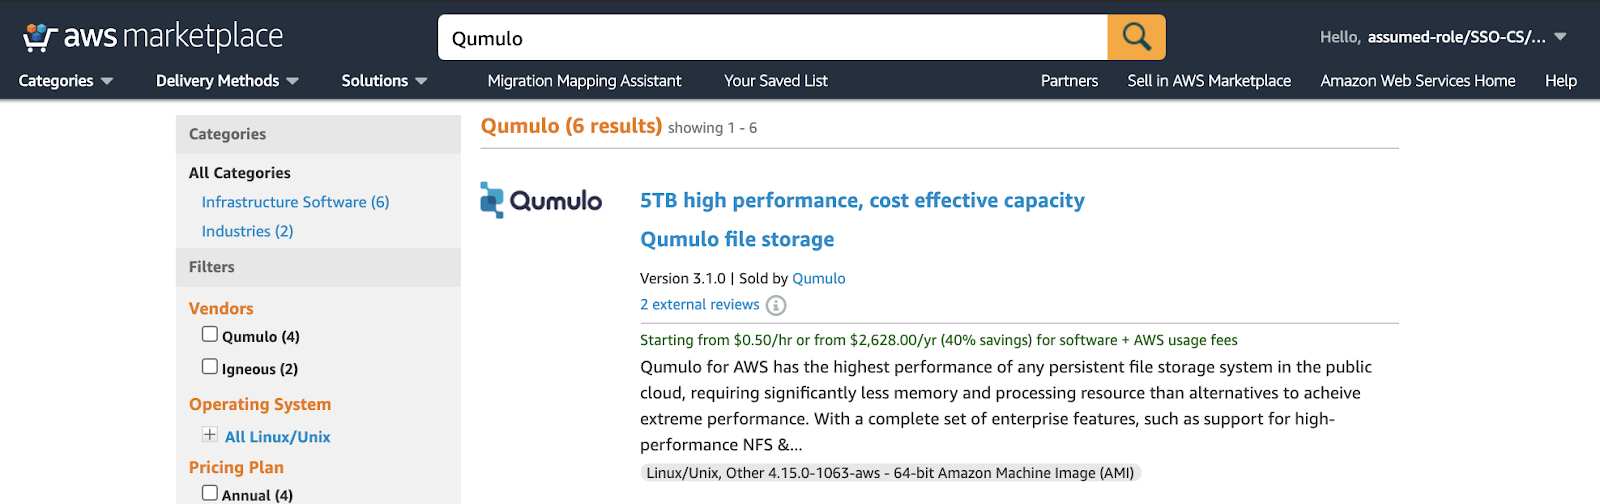 aws_marketplace_search.png